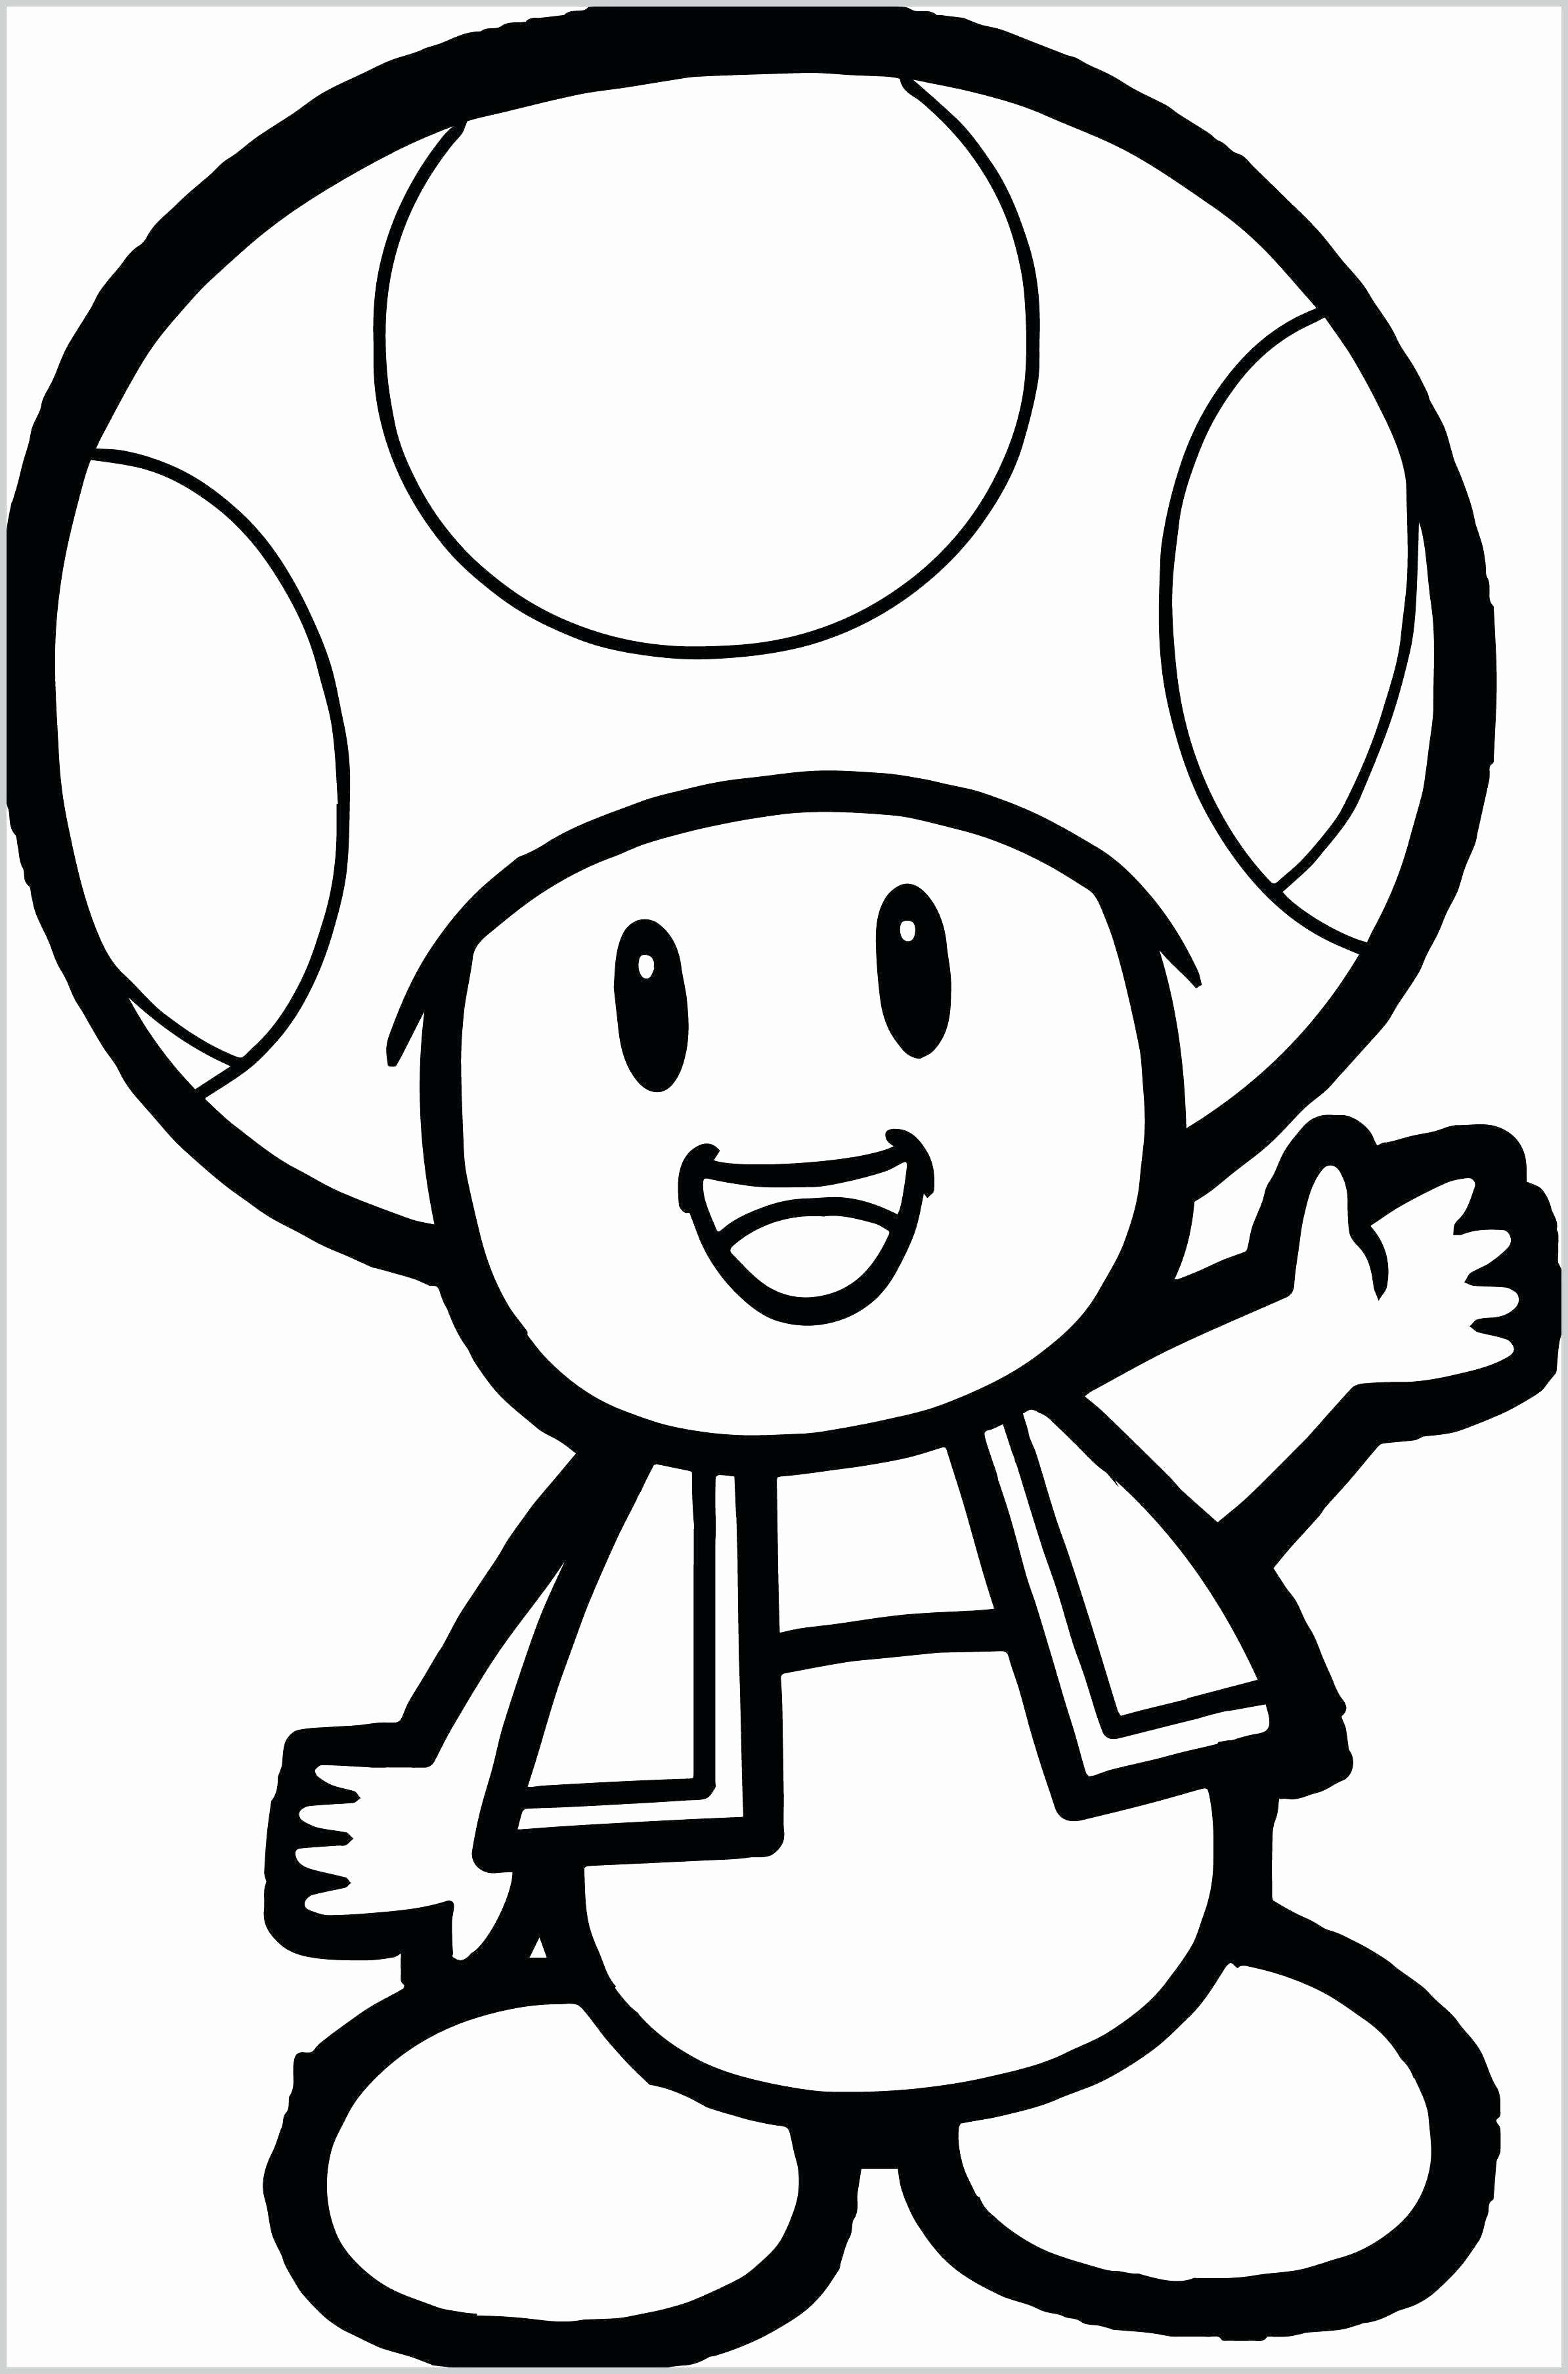 Dry Bones Coloring Pages In 2020 Super Mario Coloring Pages